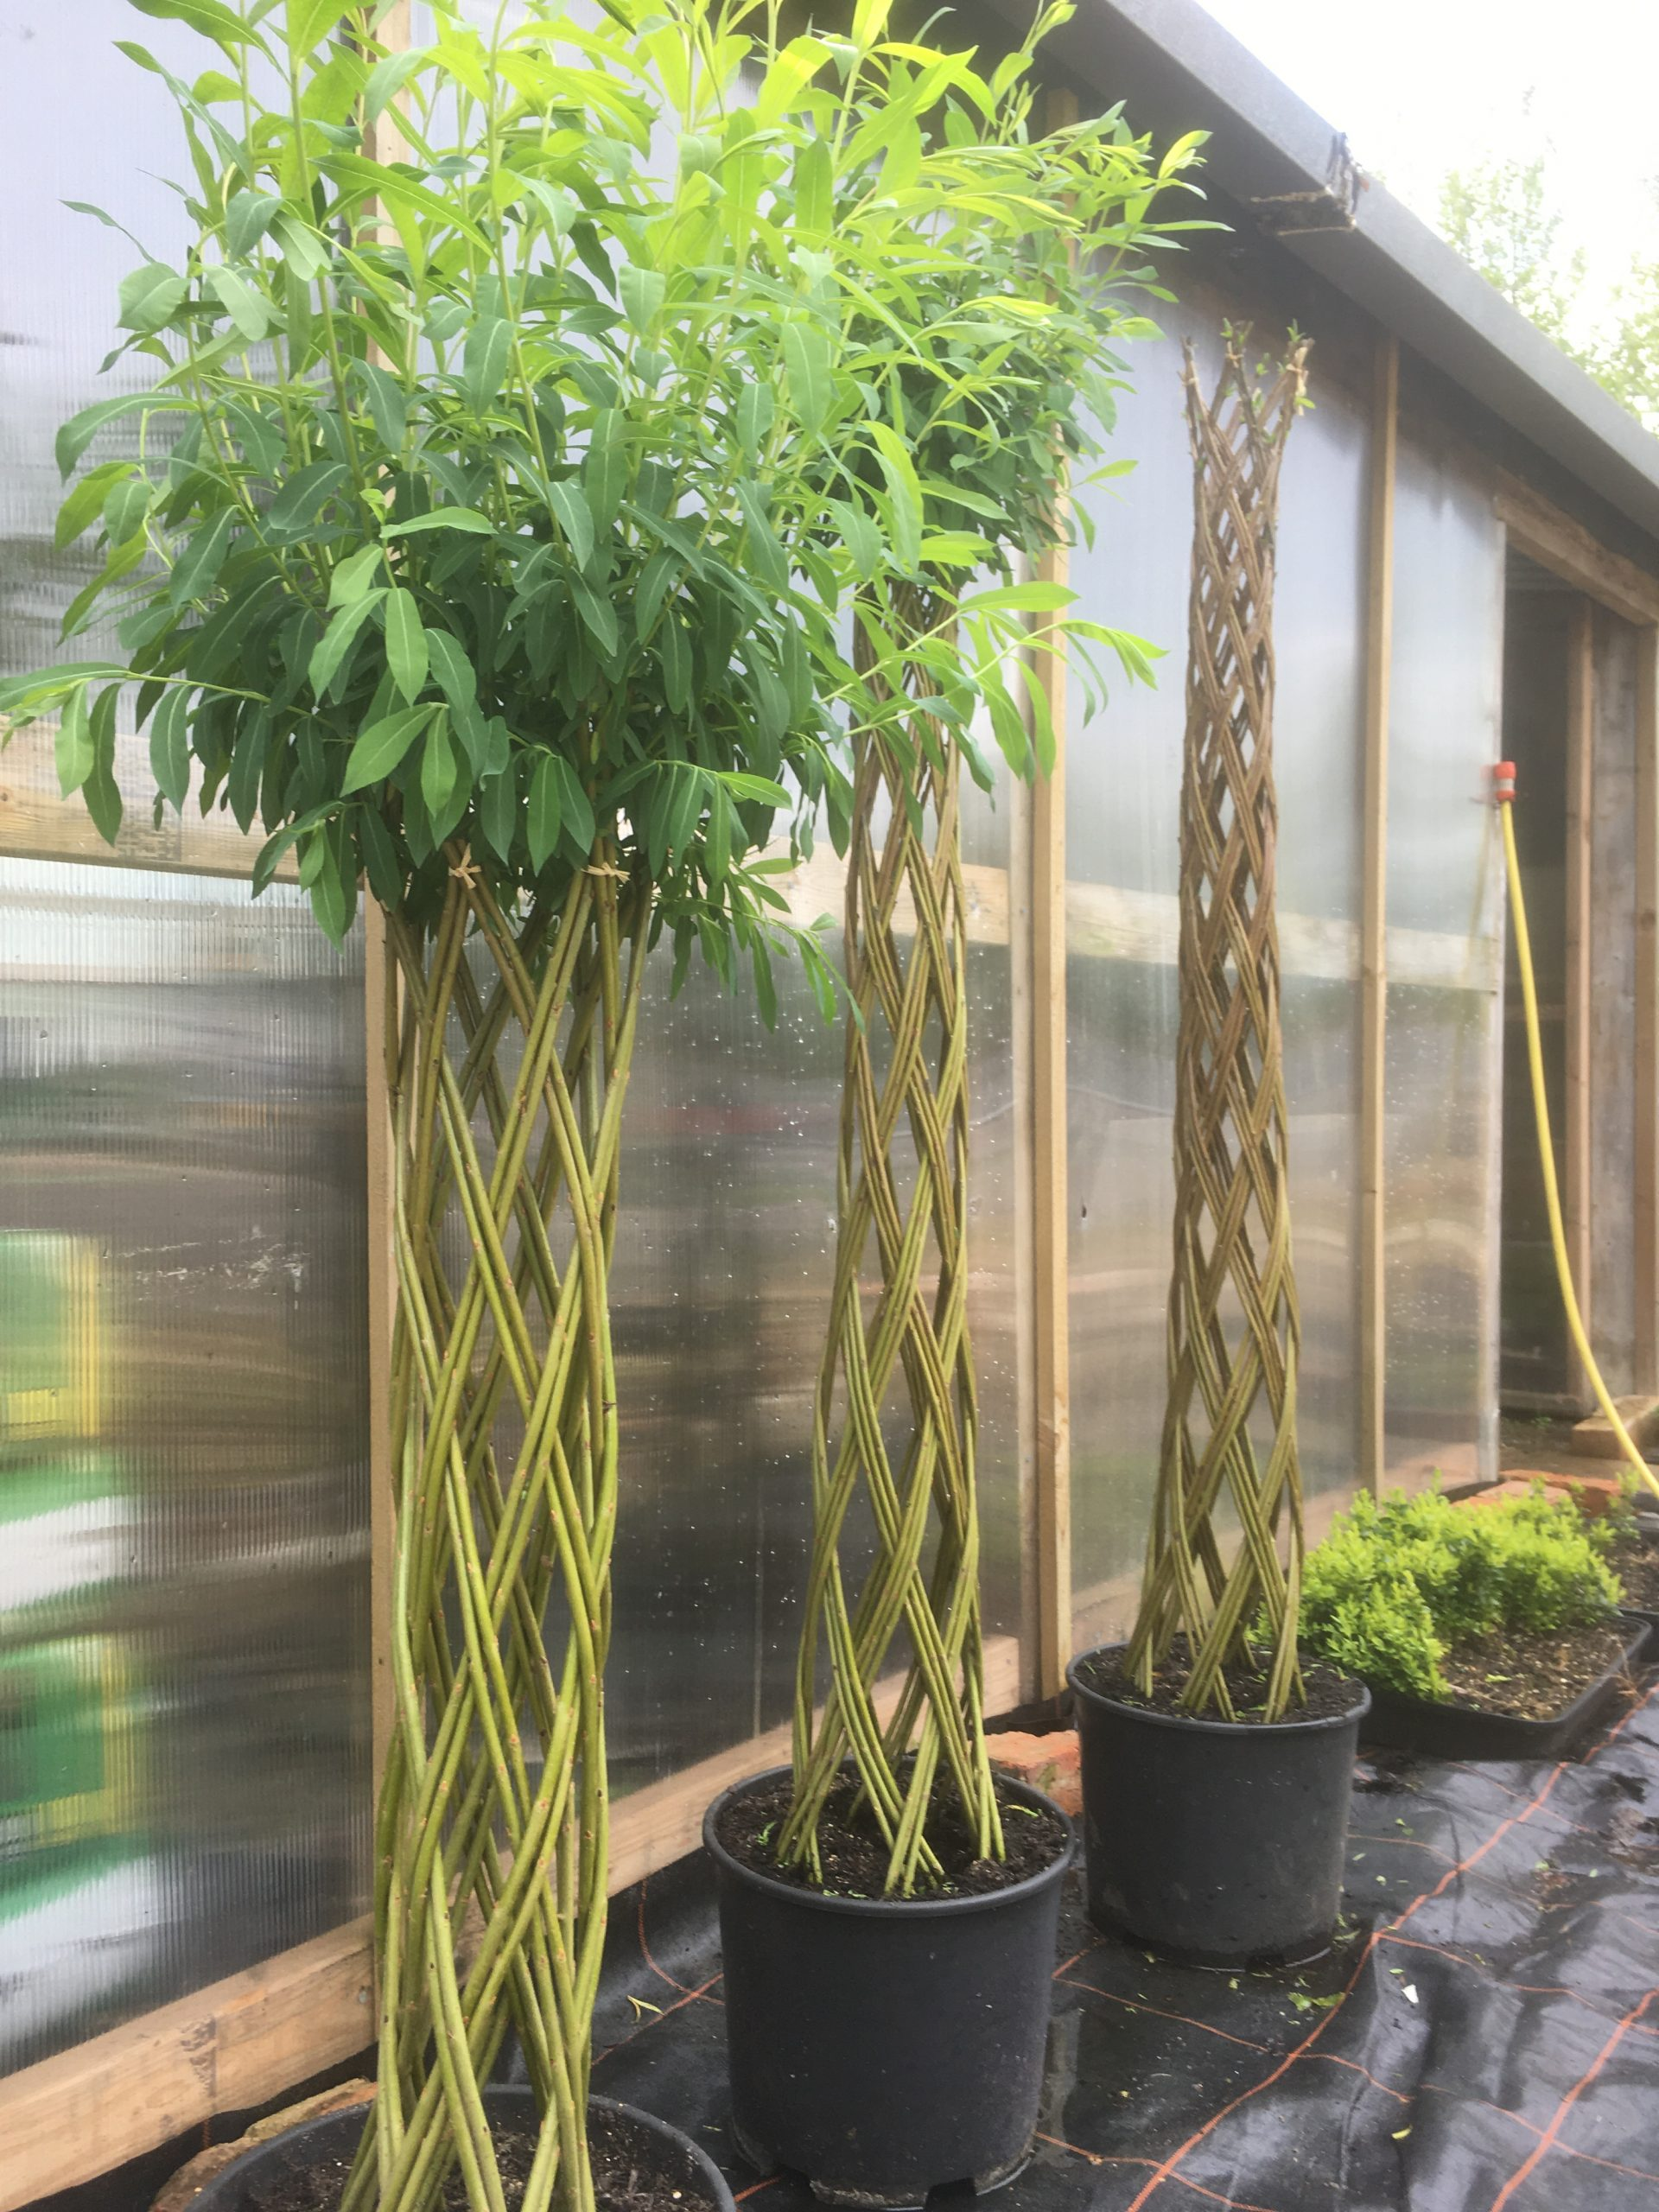 Braided Harlequin willow tree kit from Willows Nursery